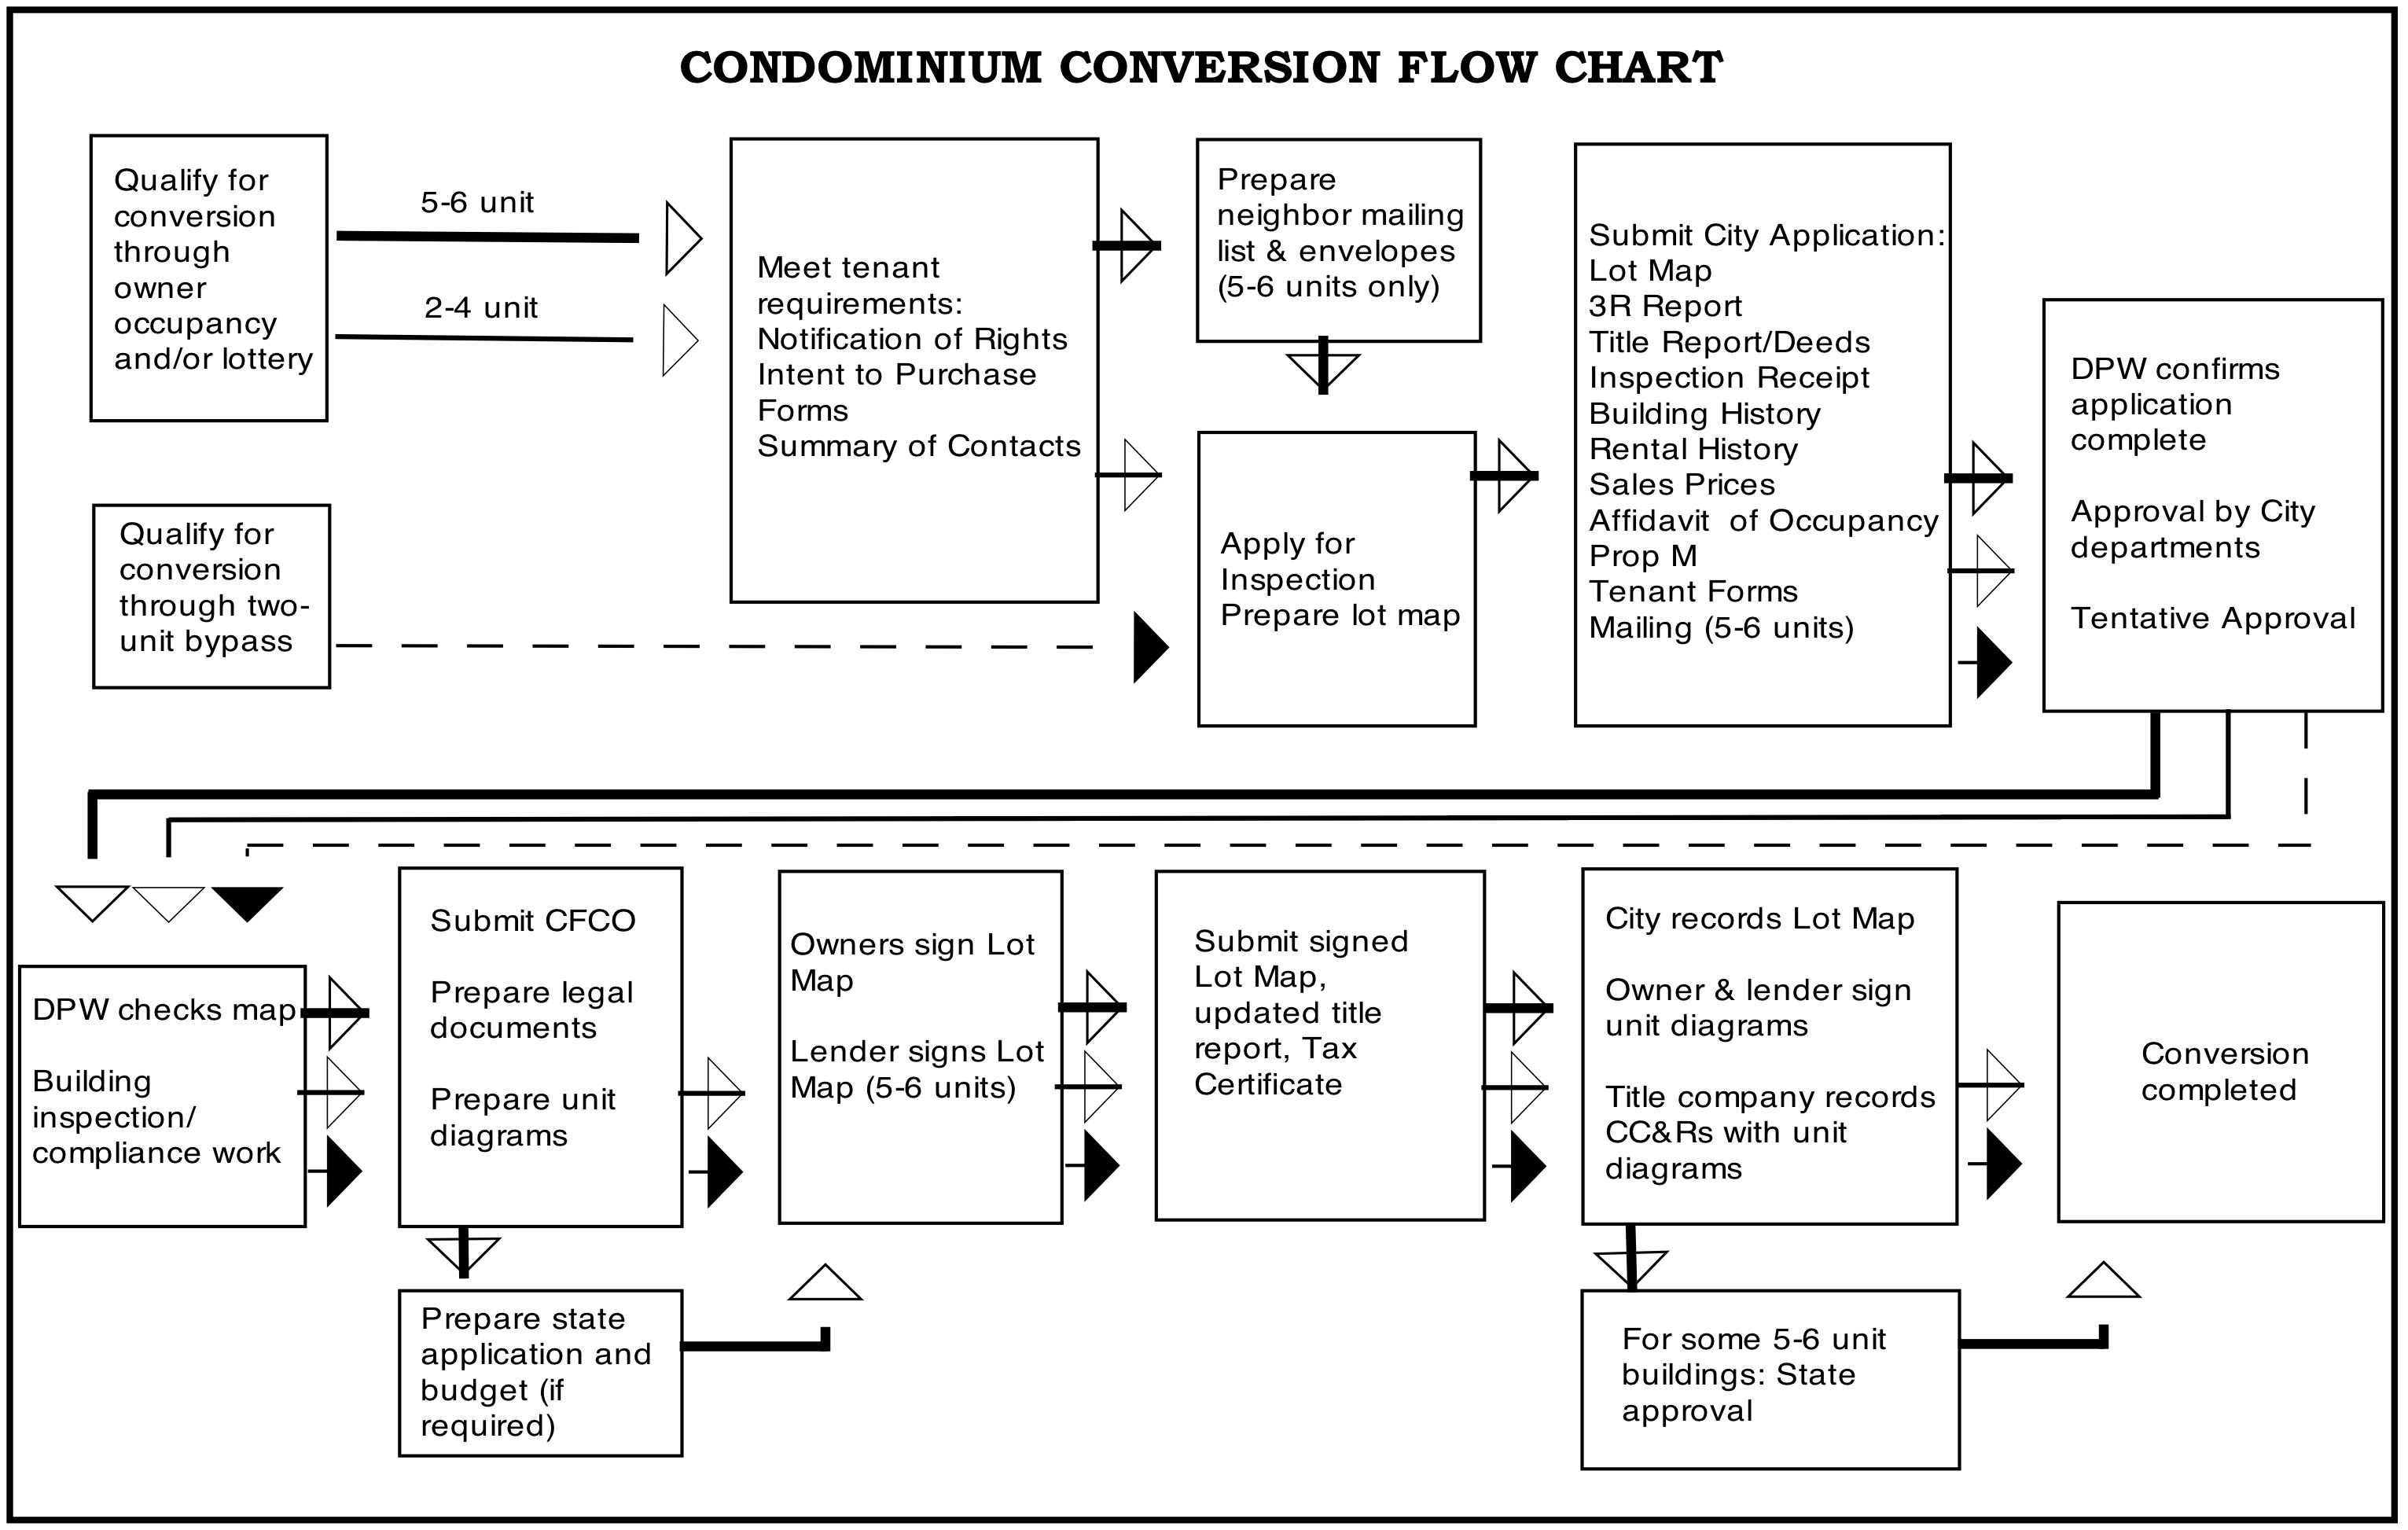 San francisco condominium conversion eligibility and process newcondoflowchart2 geenschuldenfo Images